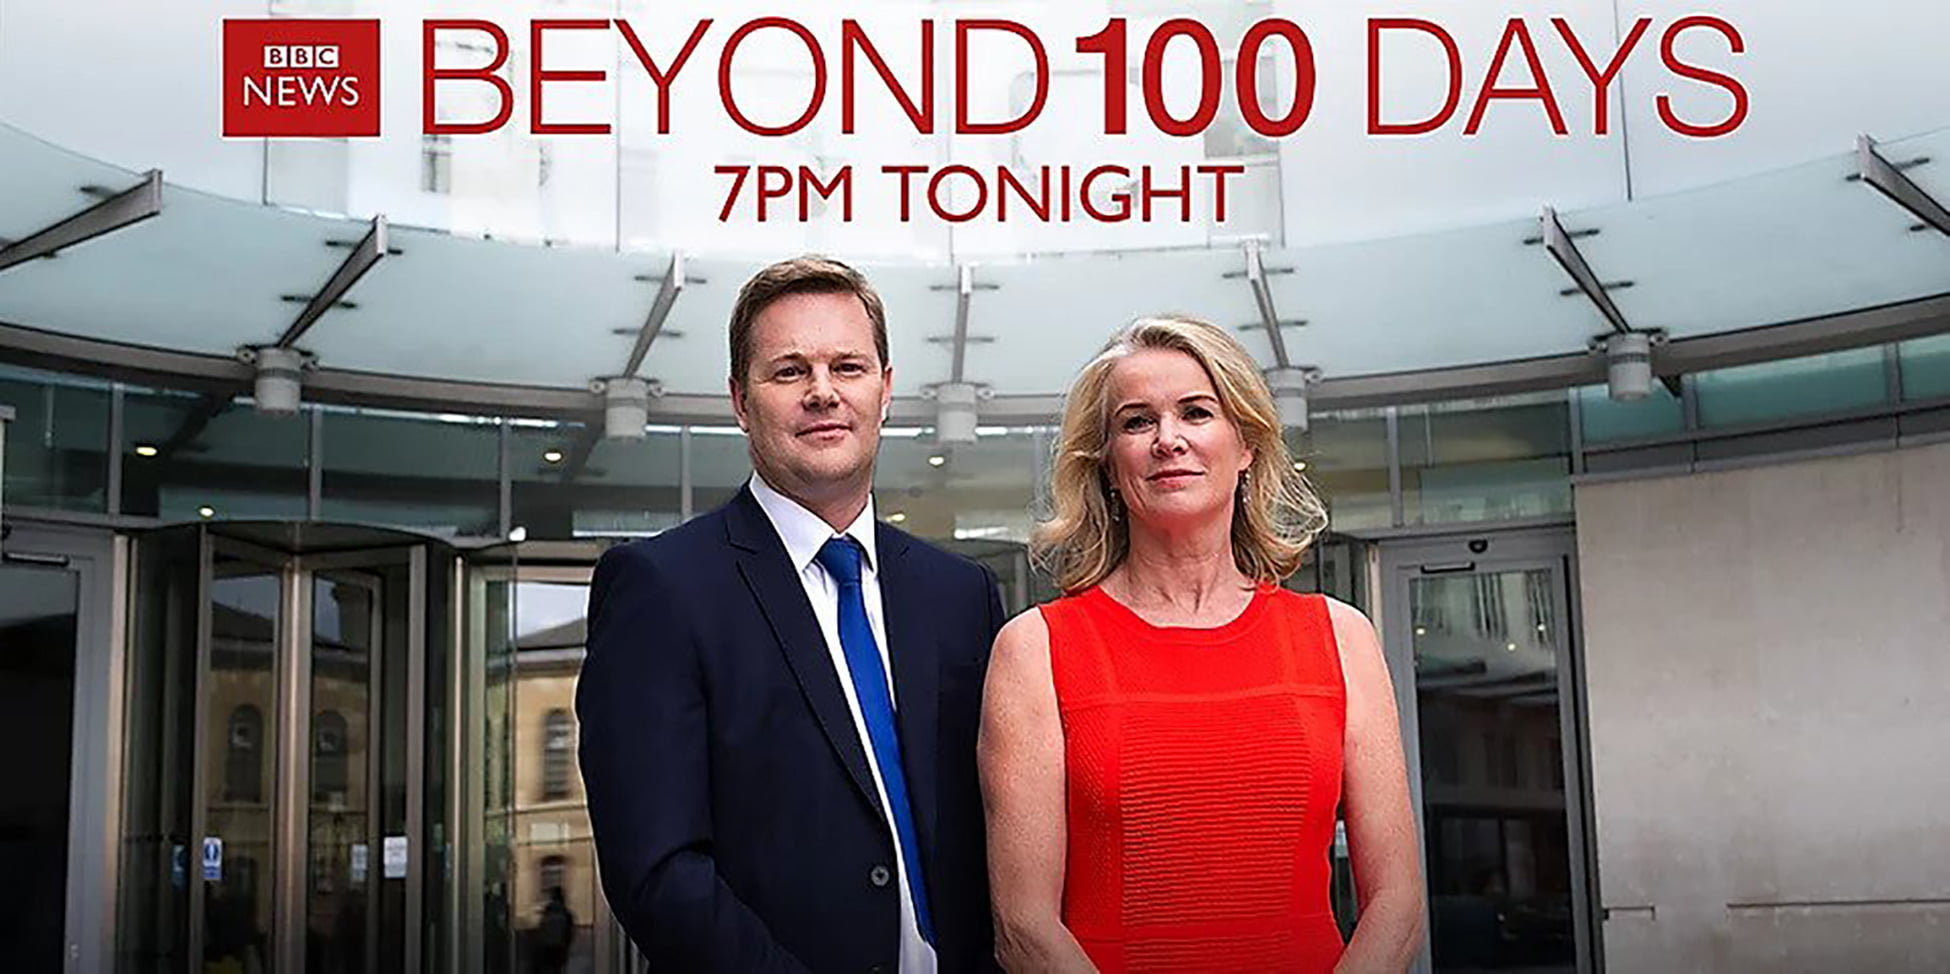 Christian Frasier BBC Beyond 100 Days